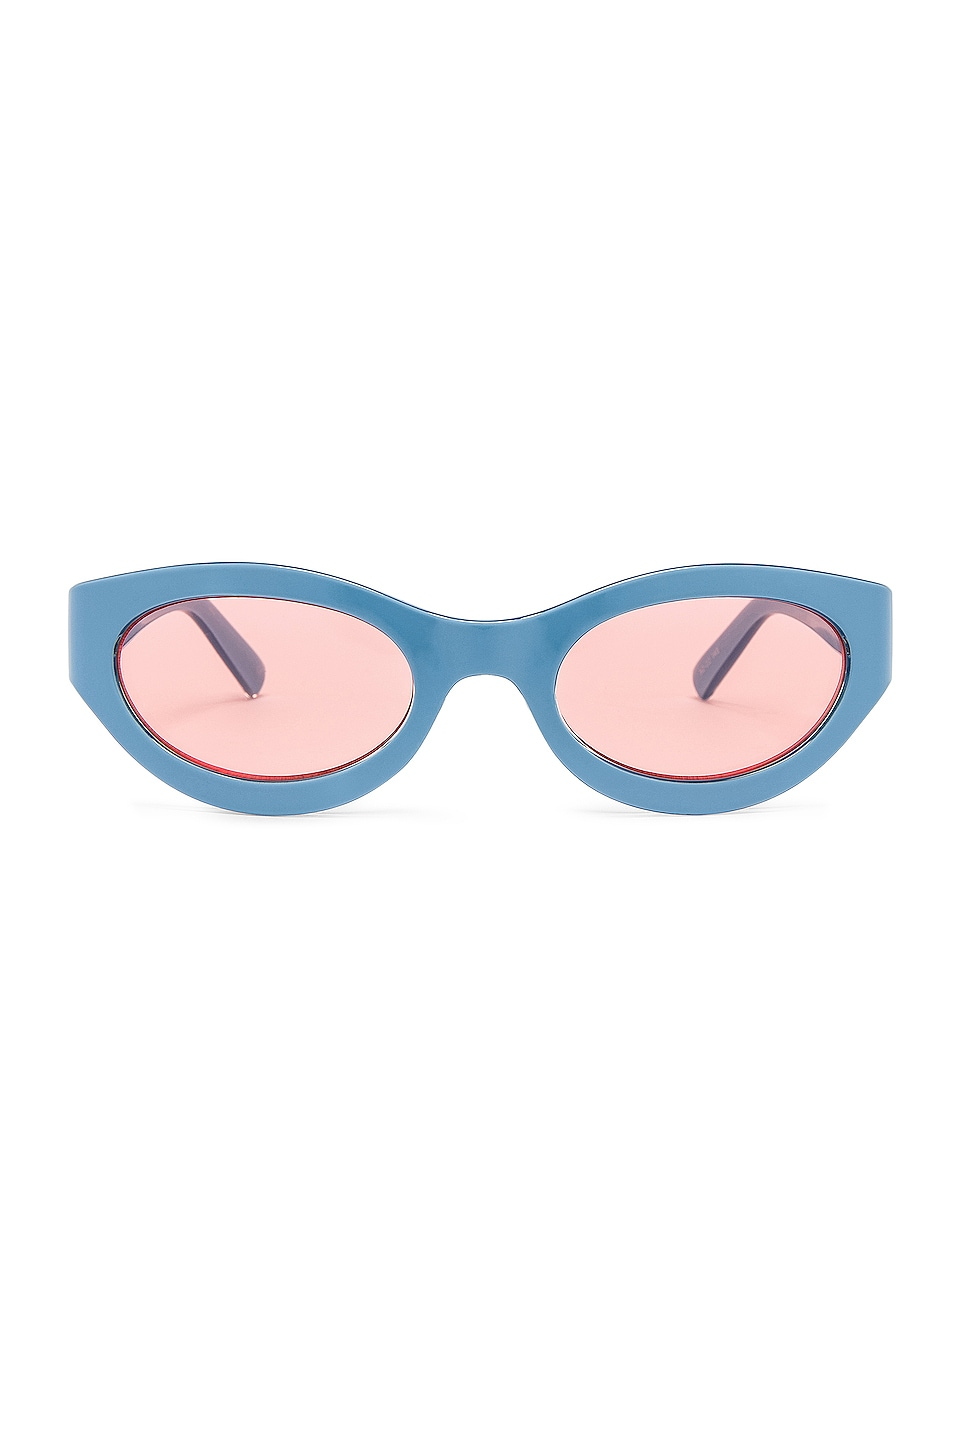 Le Specs Body Bumpin in Powder Blue & Coral Tint